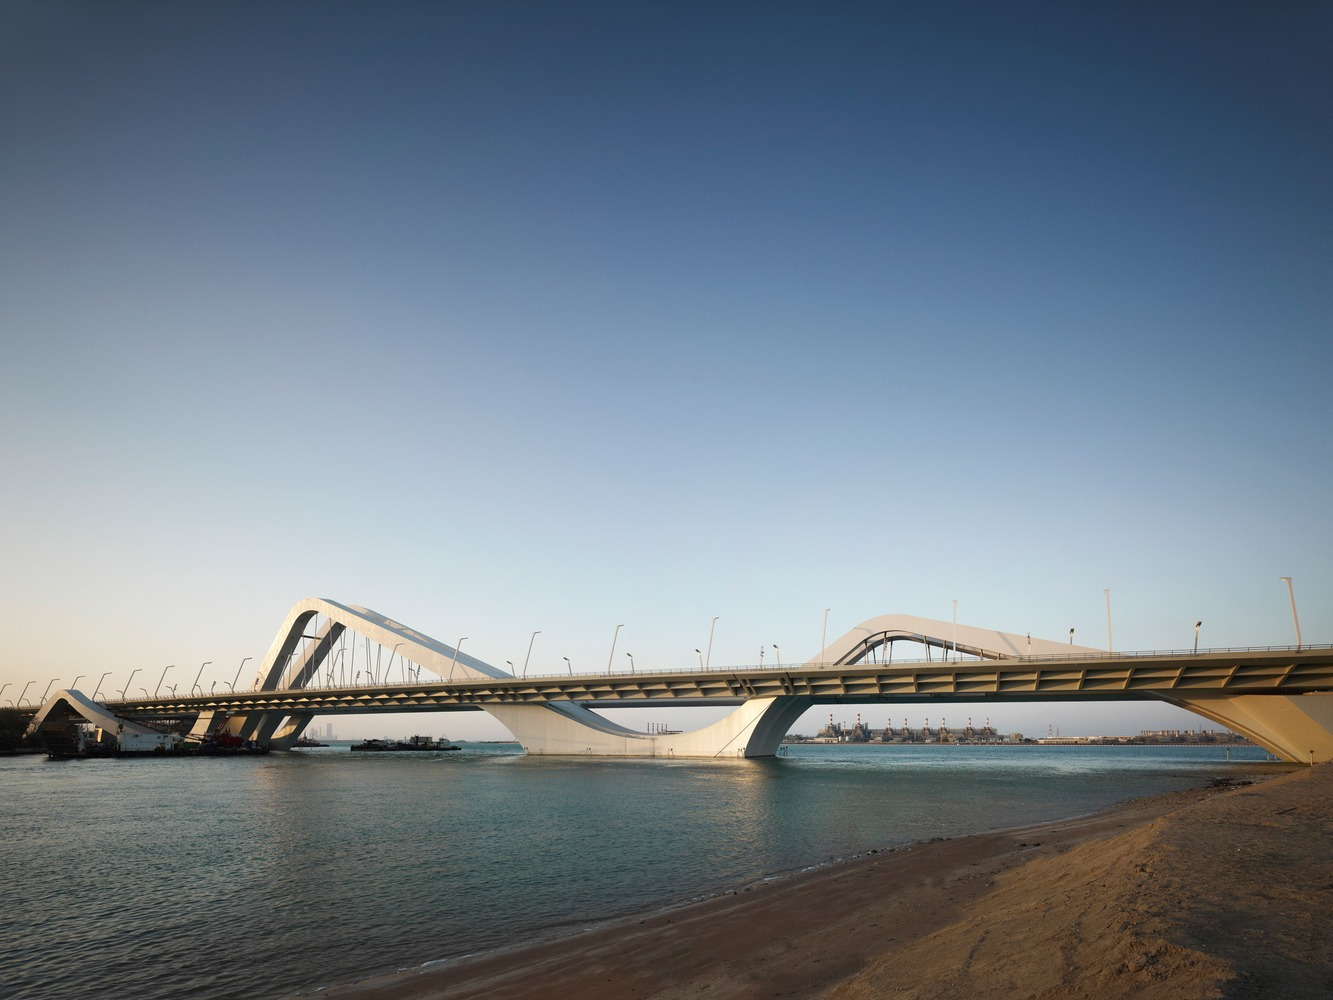 The Sheikh Zayed Bridge in Abu Dhabi.